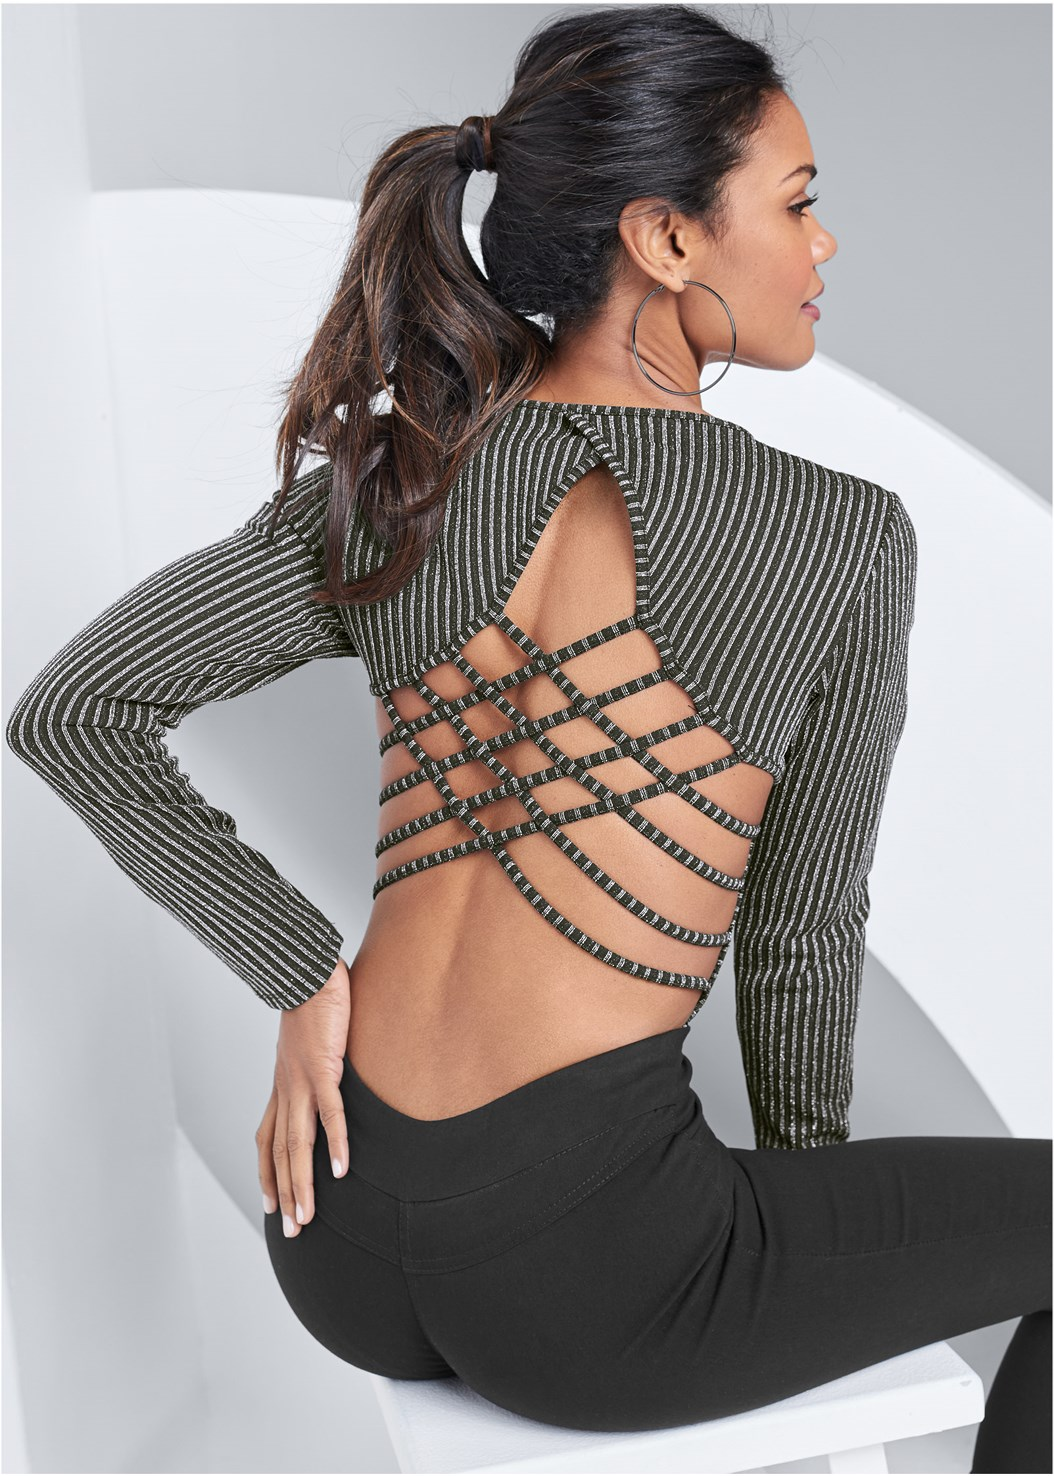 Strappy Back Bodysuit,Slimming Stretch Jeggings,Fold Over Boot